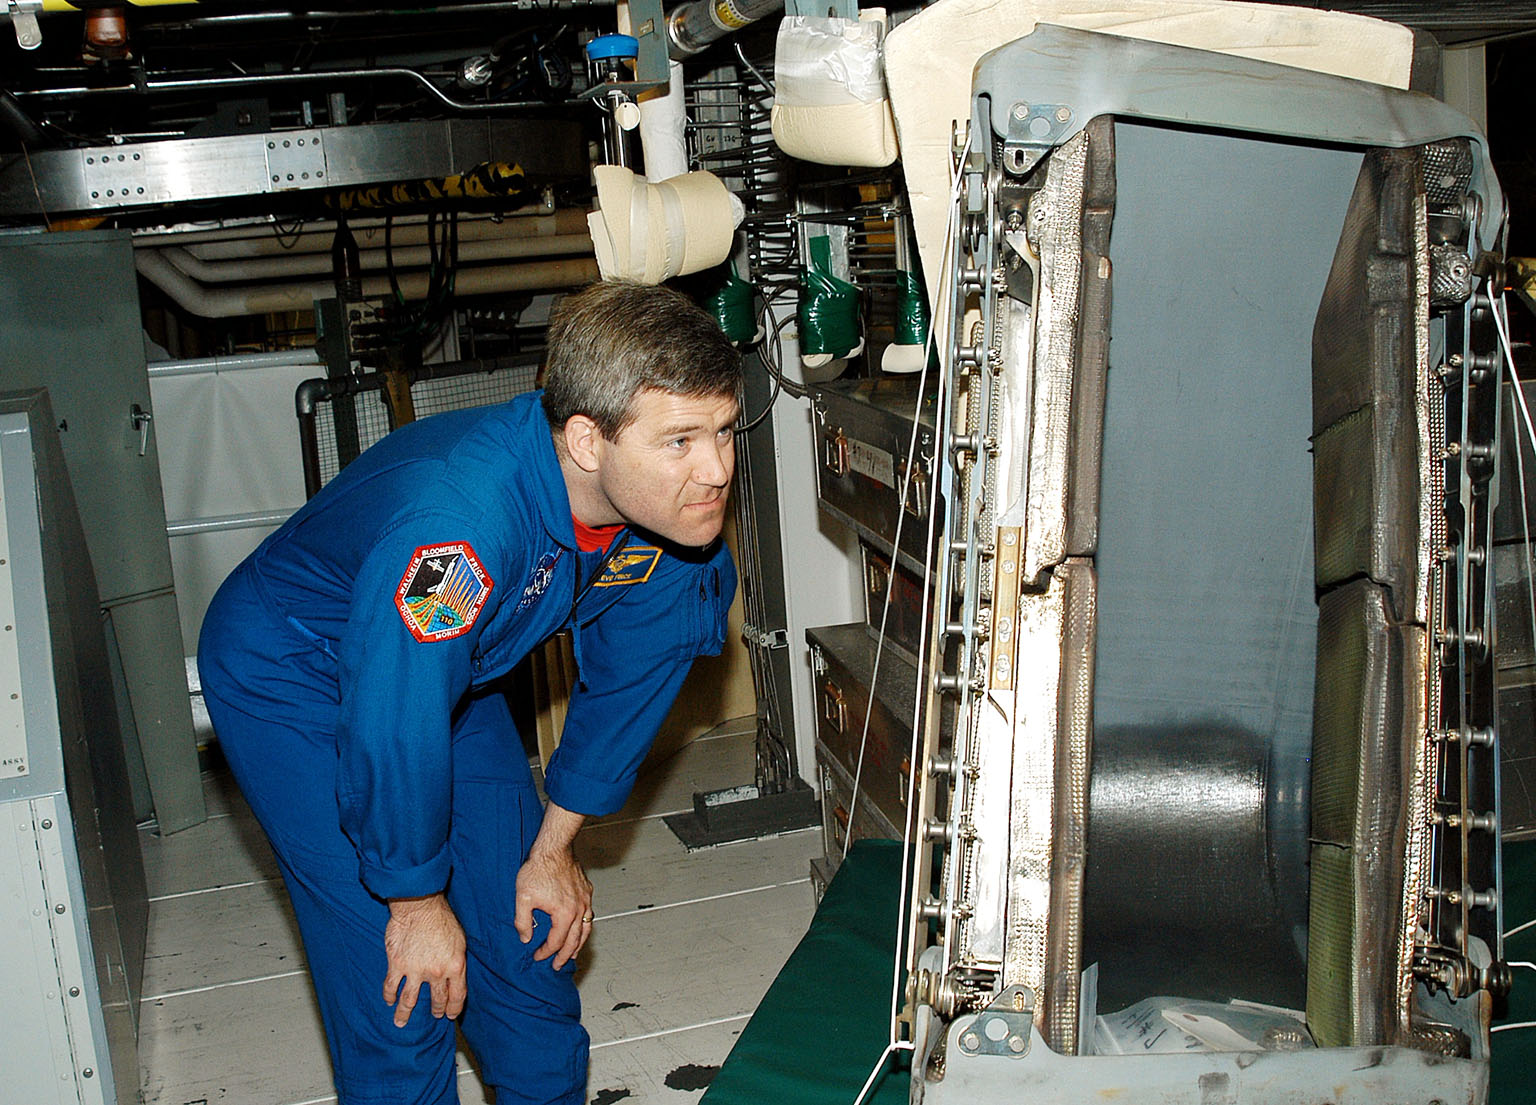 KENNEDY SPACE CENTER, FLA. - Astronaut Stephen Frick takes a close look at a reinforced carbon-carbon panel to be installed on orbiter Atlantis. Frick is a tile specialist, who joined the STS-114 crew during crew equipment and orbiter familiarization in the Orbiter Processing Facility.